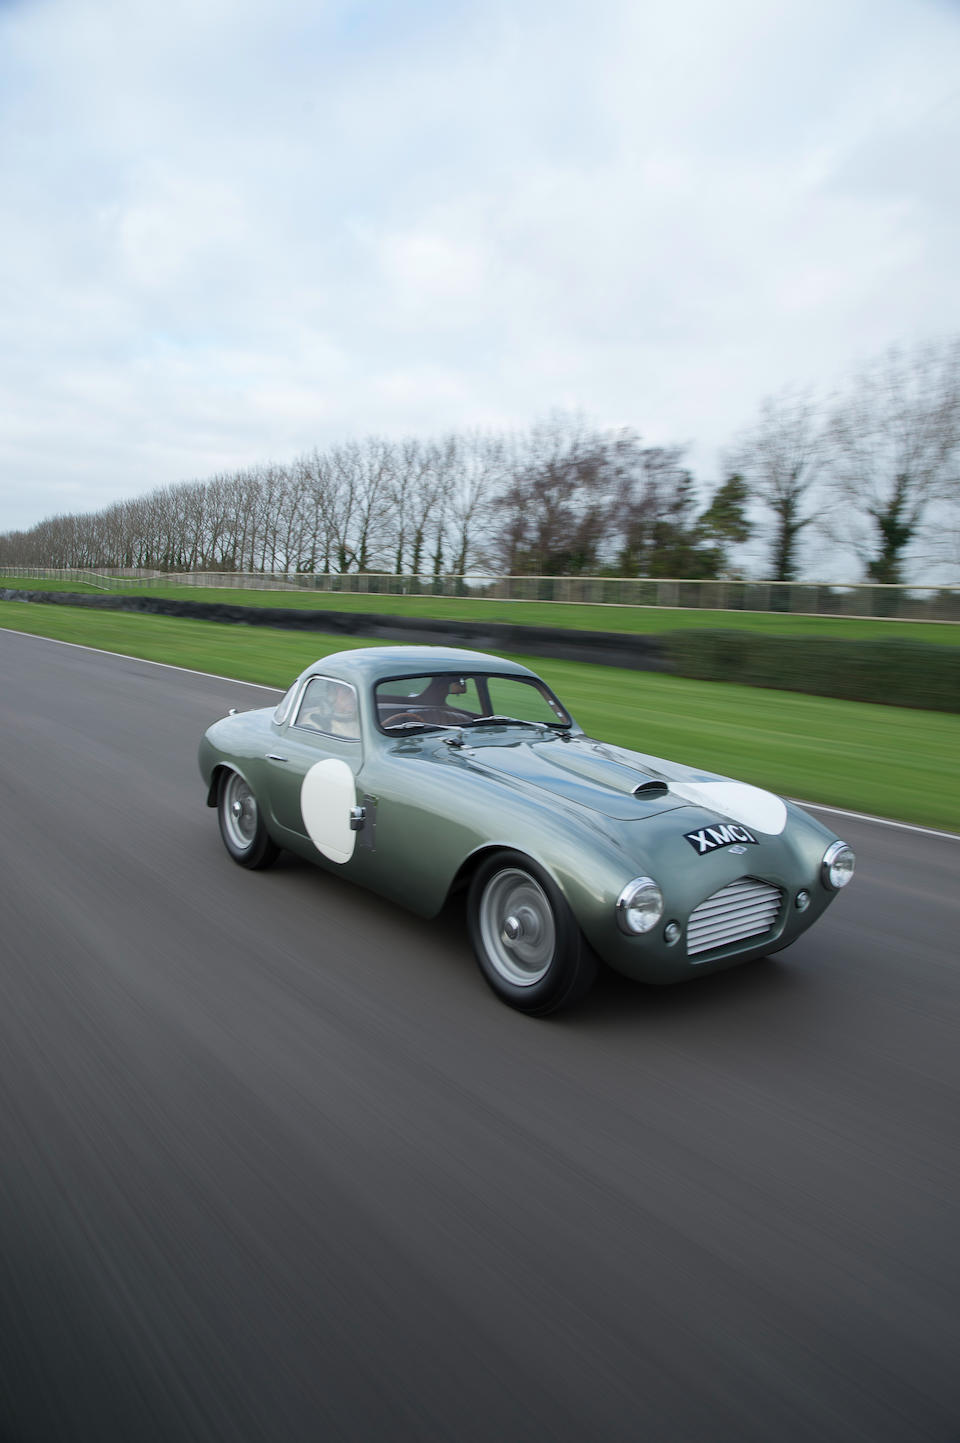 The ex-Mrs Kitty Maurice; 1959 Le Mans (Dashwood/Wilks),1955 Frazer Nash Le Mans Coupé  Chassis no. 421/200/203 Engine no. BS4/1/415